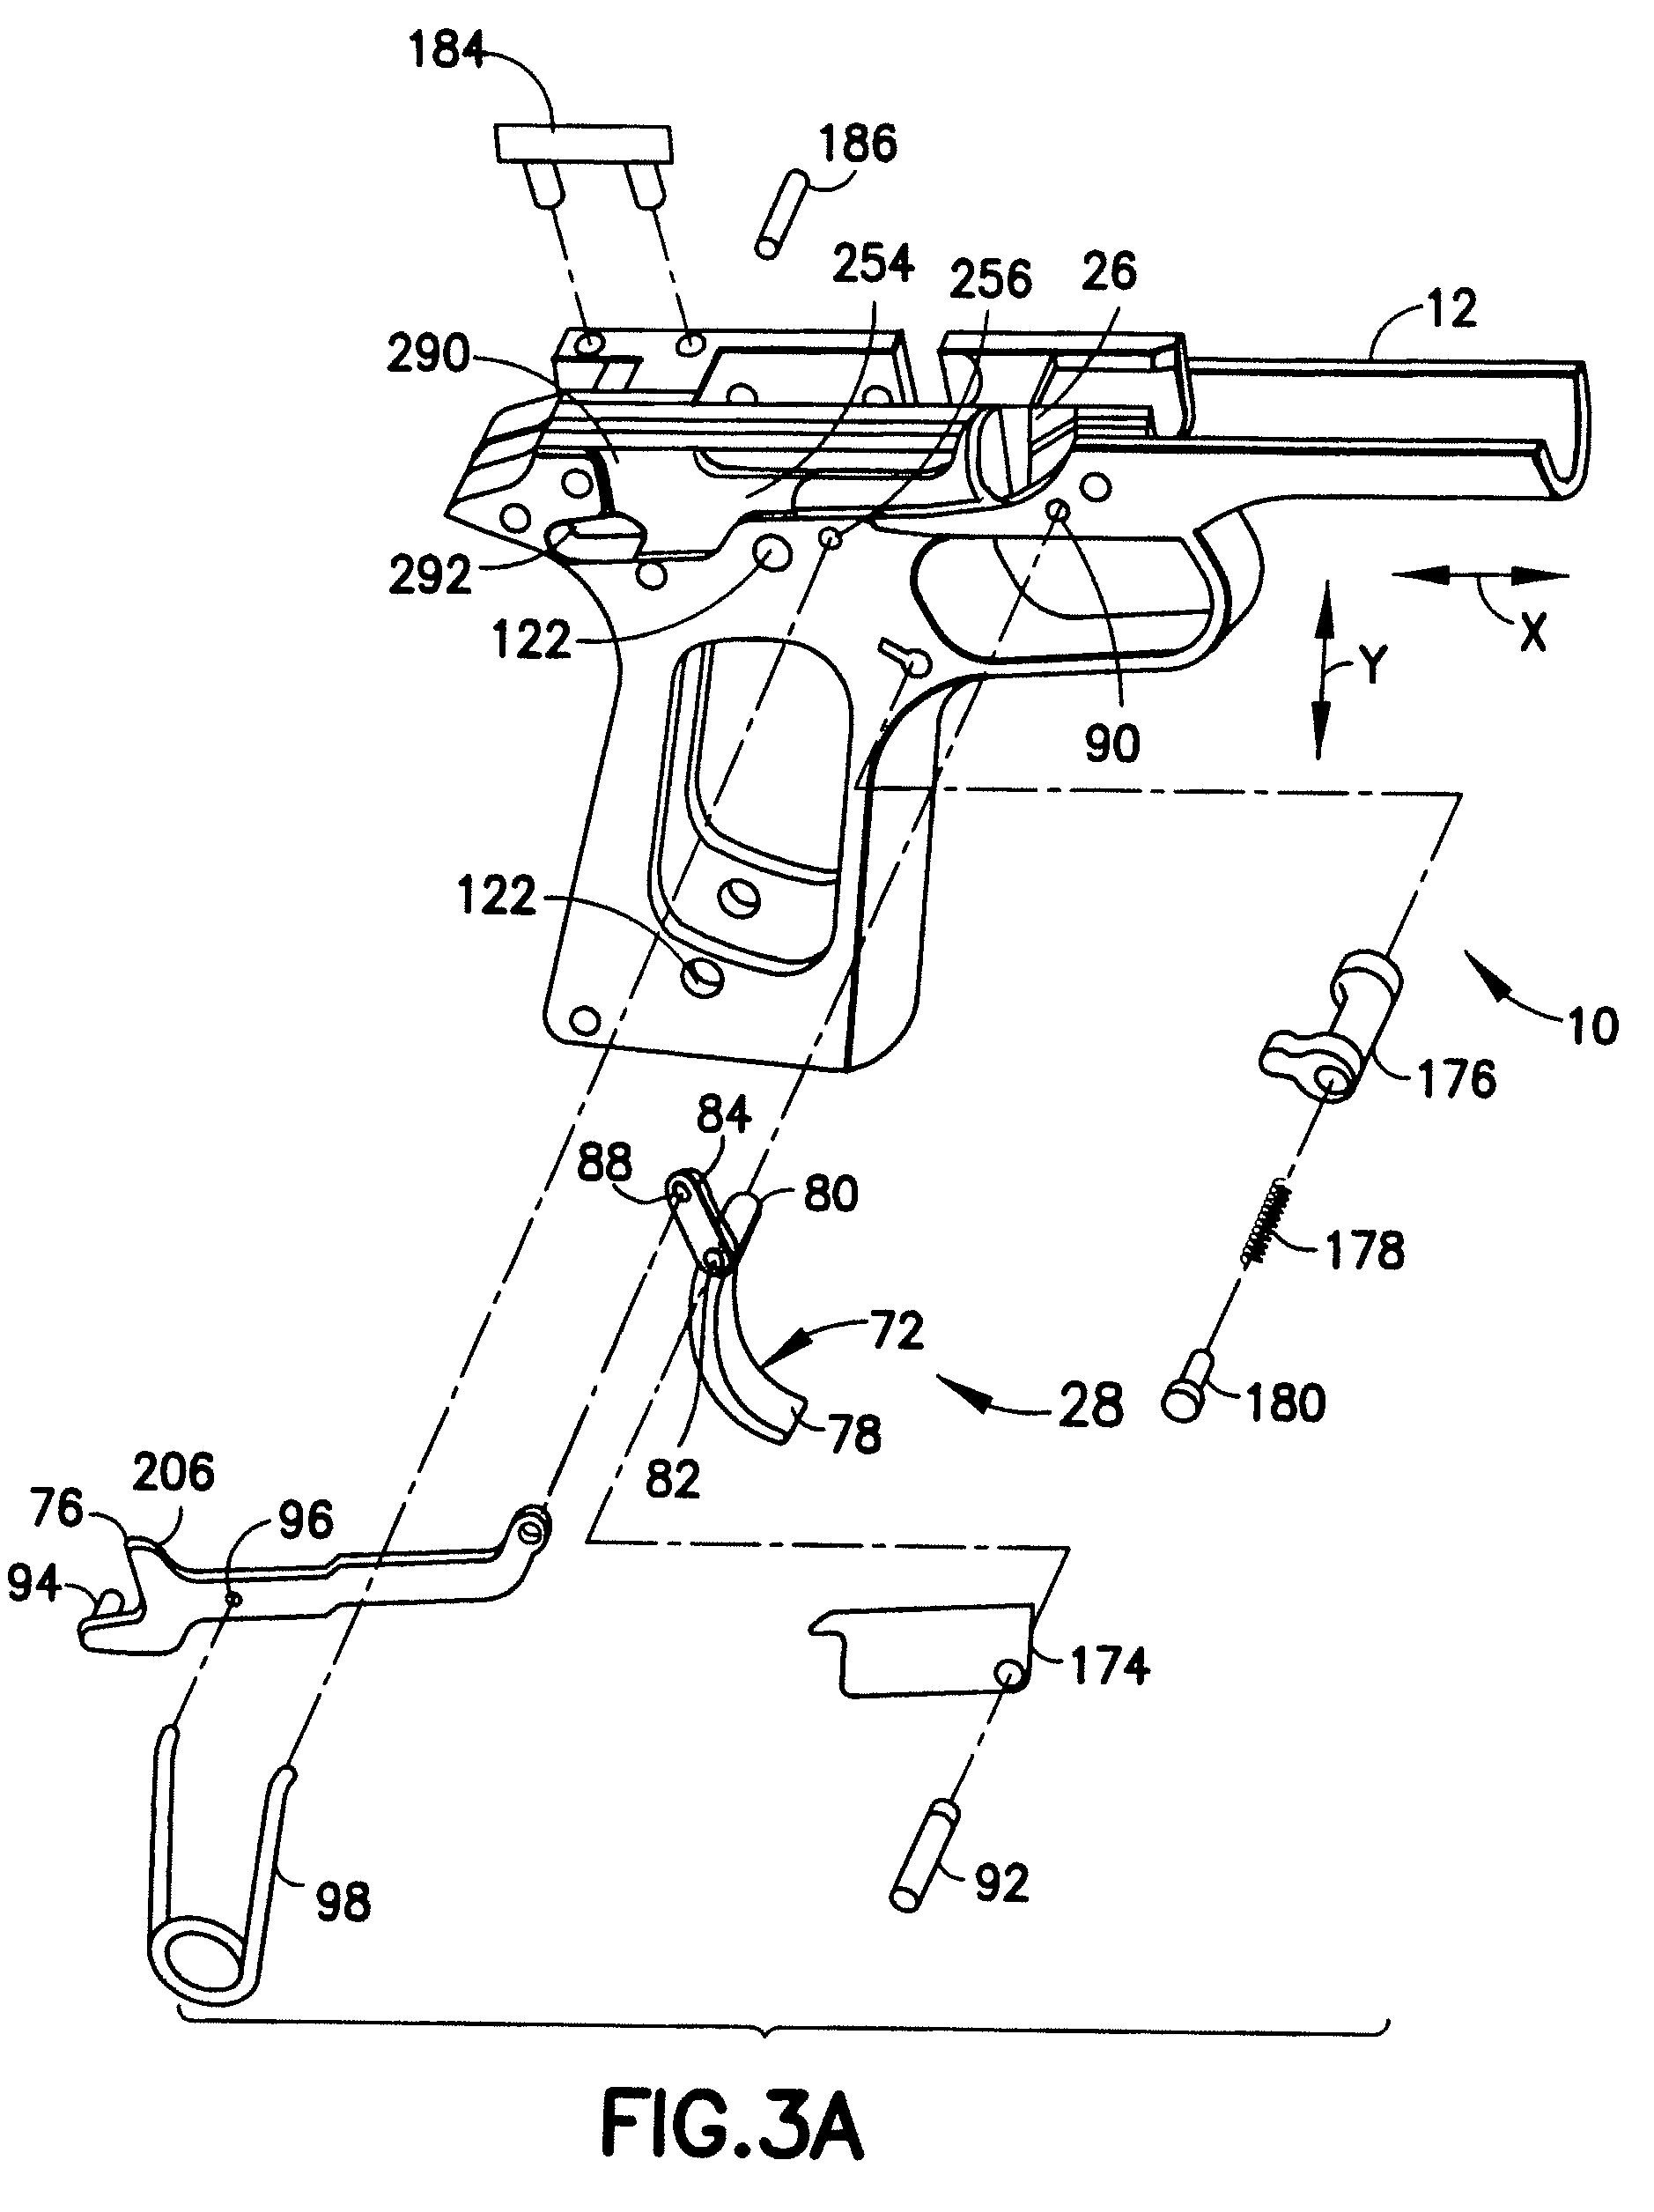 Assembly Diagram For Colt 1911 Related Keywords Suggestions Long Kimber Parts